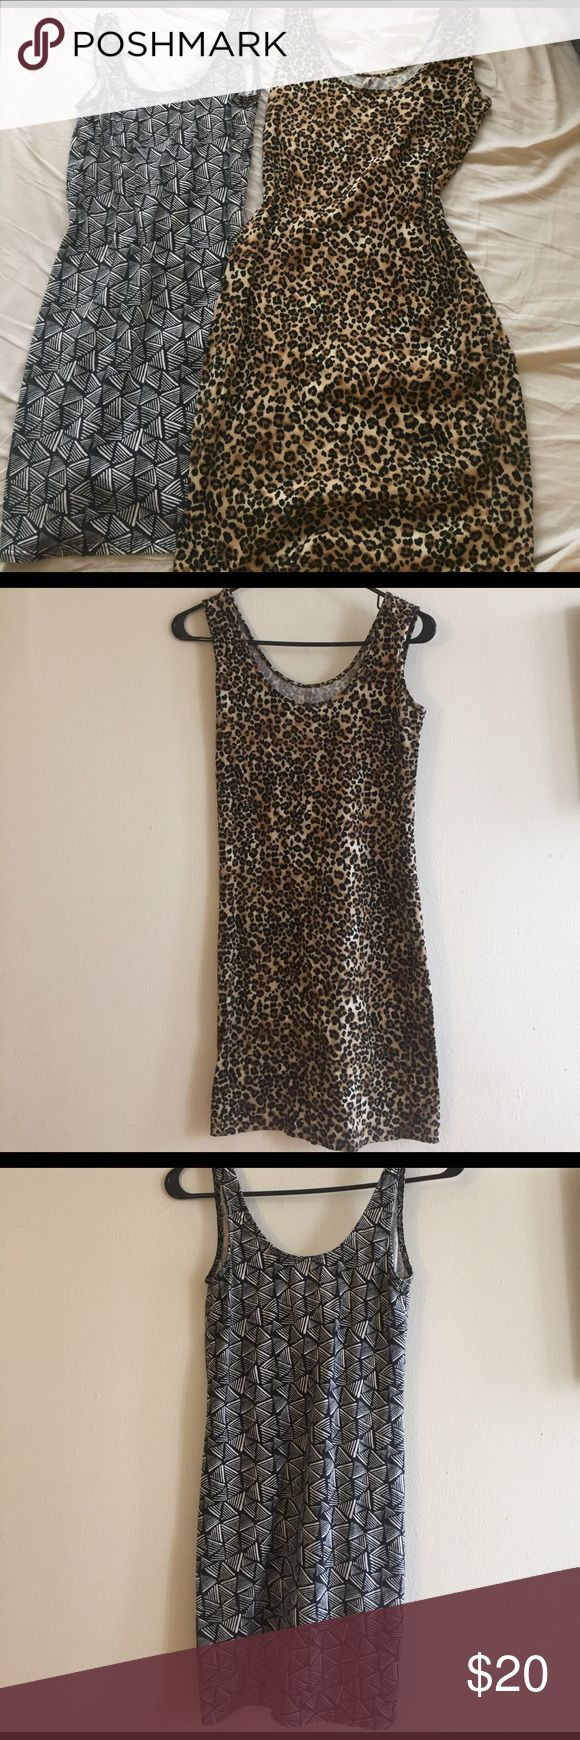 """Body-Con Dress Set Navy and White Tribal Print: H&M, Size 8. Cute v-shaped cut in back. Perfect condition. Animal Print: Size S. """"Heart and Hips"""" brand, from boutique in Chicago. Never been worn. Both of these dresses are stretchy and comfy and look really sexy on. Can be worn as going out dresses, or look adorable as bandage skirts with a t-shirt tossed over top! I'm more than willing to sell them separately if you like one and not the other. Feel free to make me an offer! H&M Dresses Mini"""